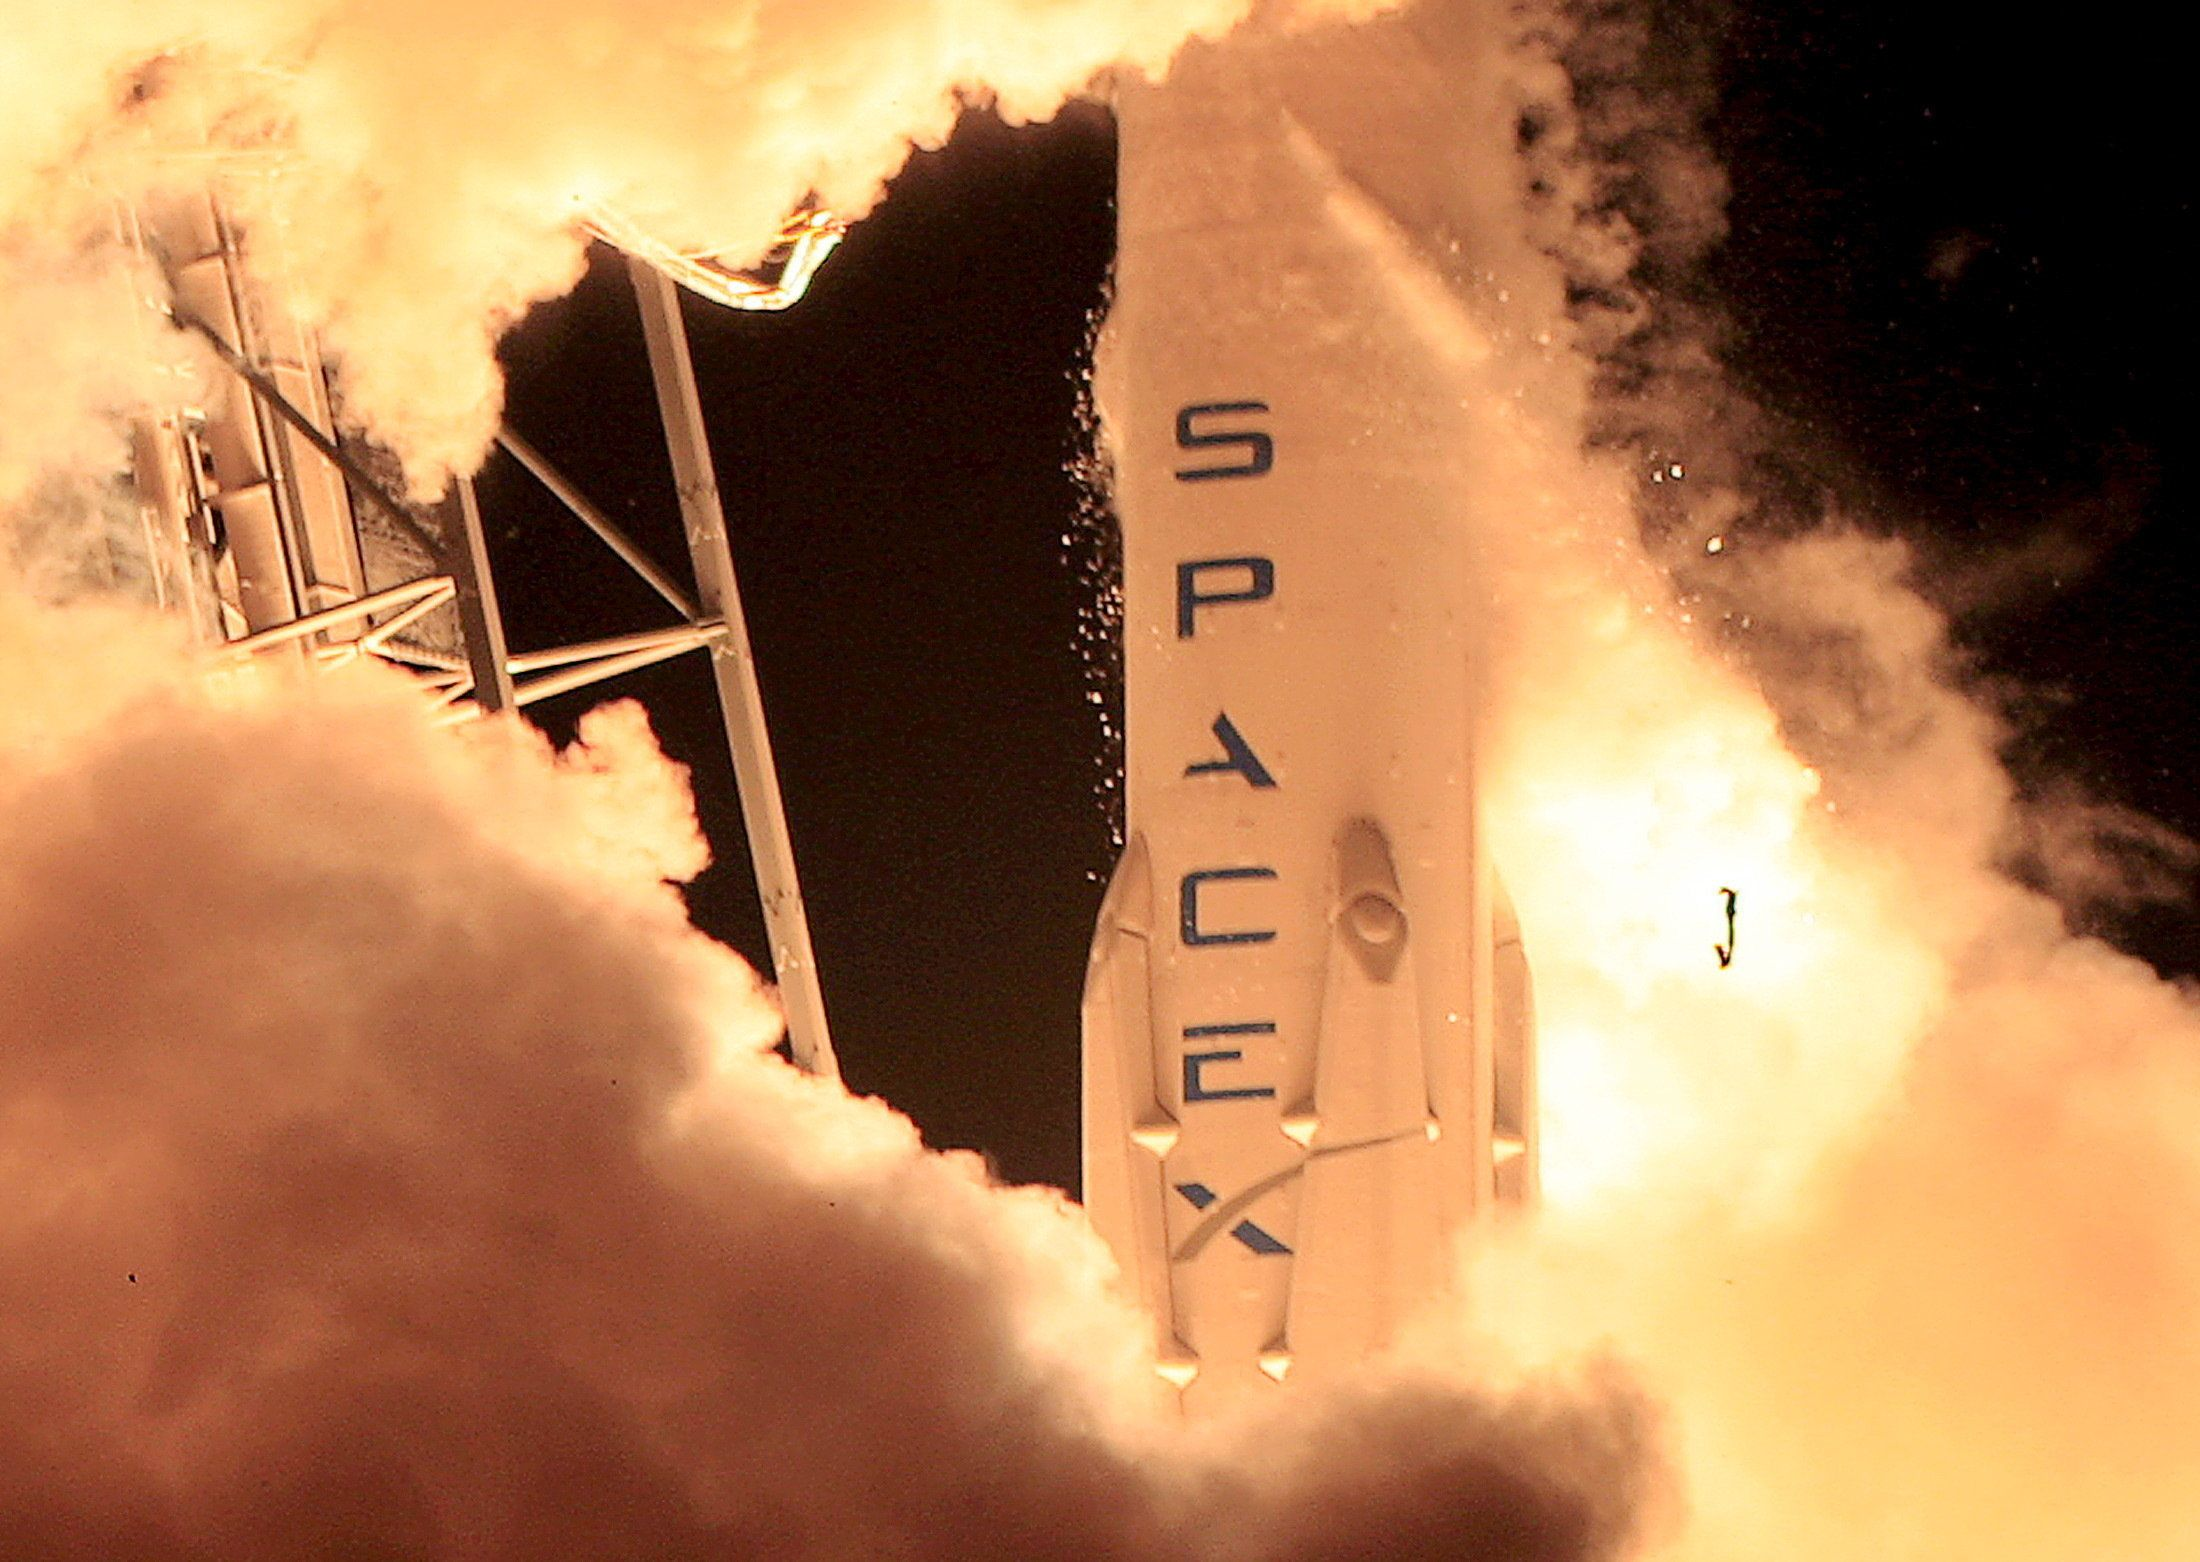 A remodeled version of the SpaceX Falcon 9 rocket lifts off at the Cape Canaveral Air Force Station on the launcher's first mission since a June failure in Cape Canaveral, Florida, December 21, 2015. The rocket carried a payload of eleven satellites owned by Orbcomm, a New Jersey-based communications company. The first stage returned to land following launch.  REUTERS/Joe Skipper